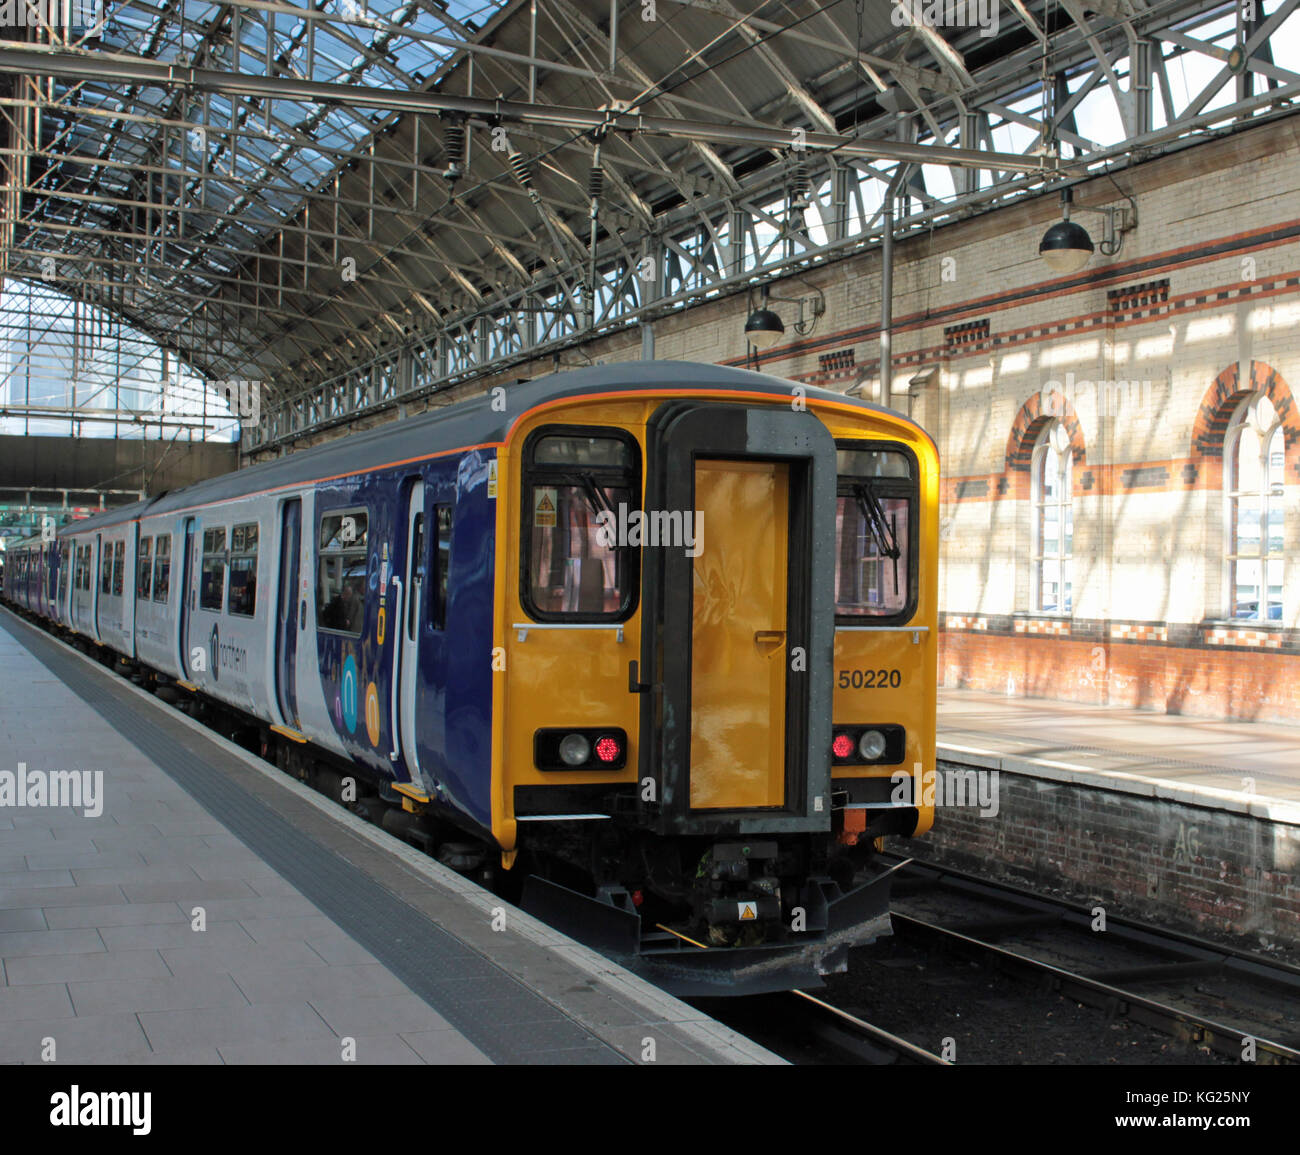 A Northern Railway recently refurbished and repainted train stands in platform two at Manchester Piccadilly before - Stock Image